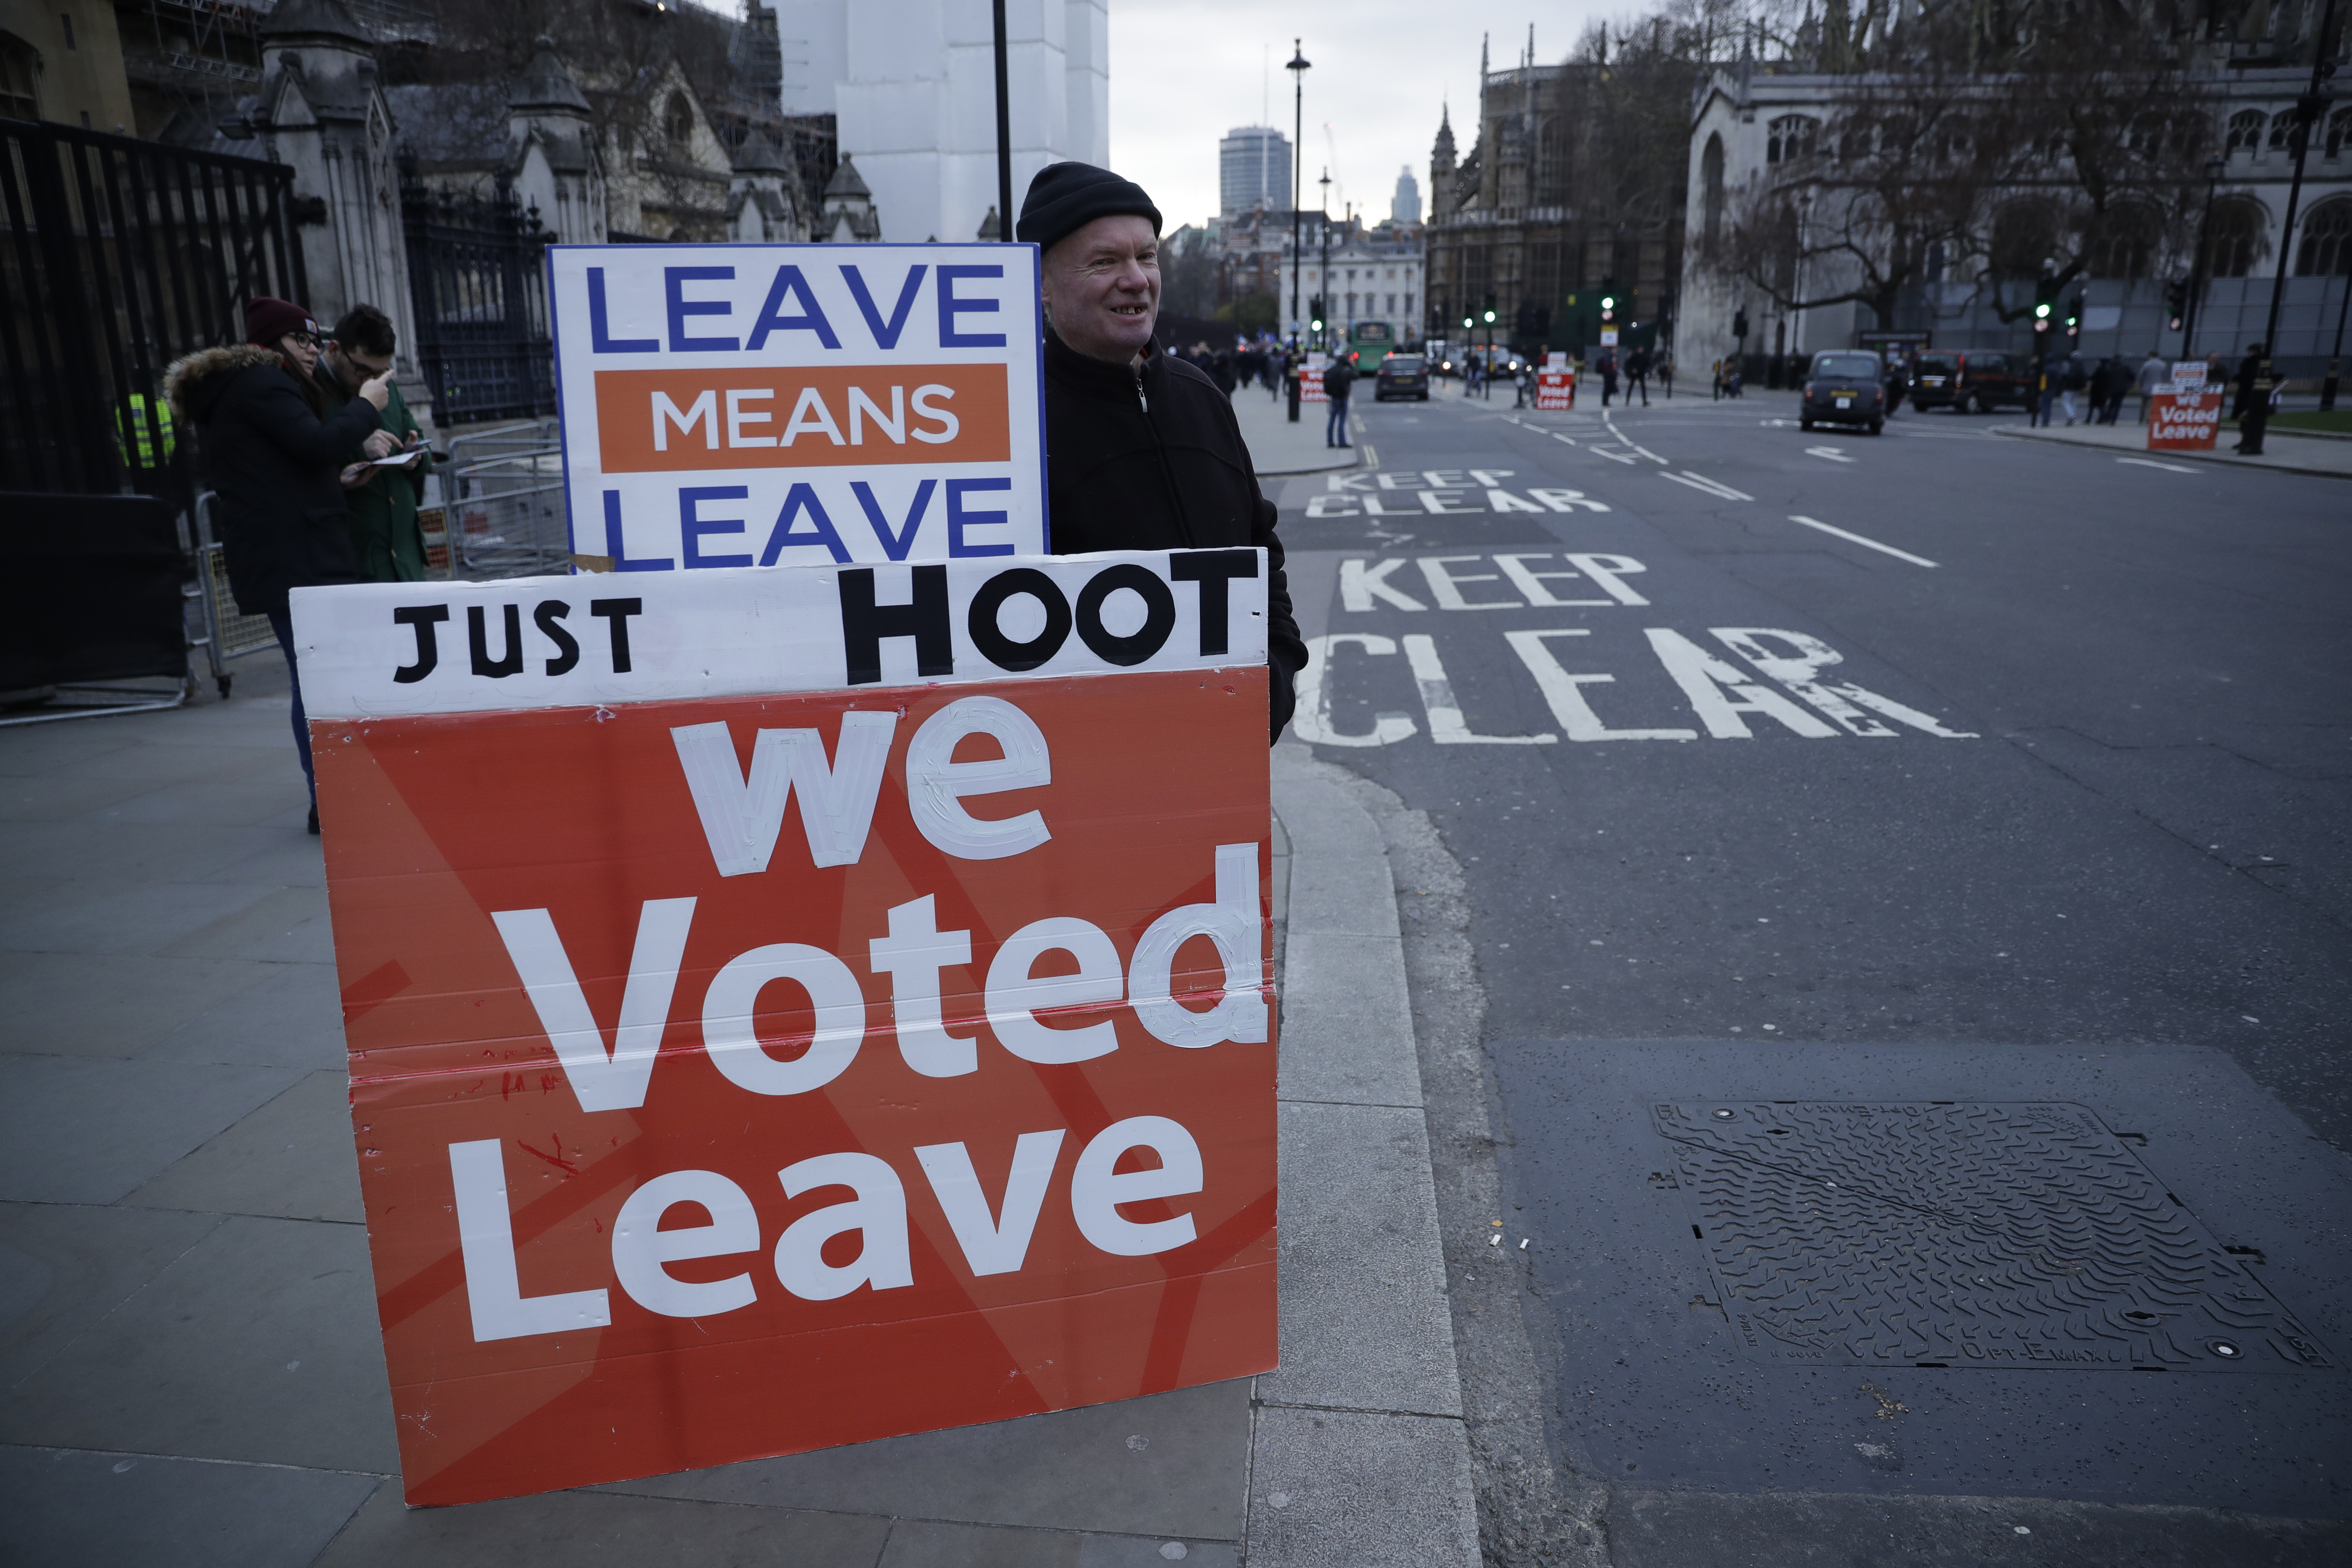 A pro-Brexit leave the European Union supporter demonstrates with placards outside the Houses of Parliament in London, Jan. 21, 2019.